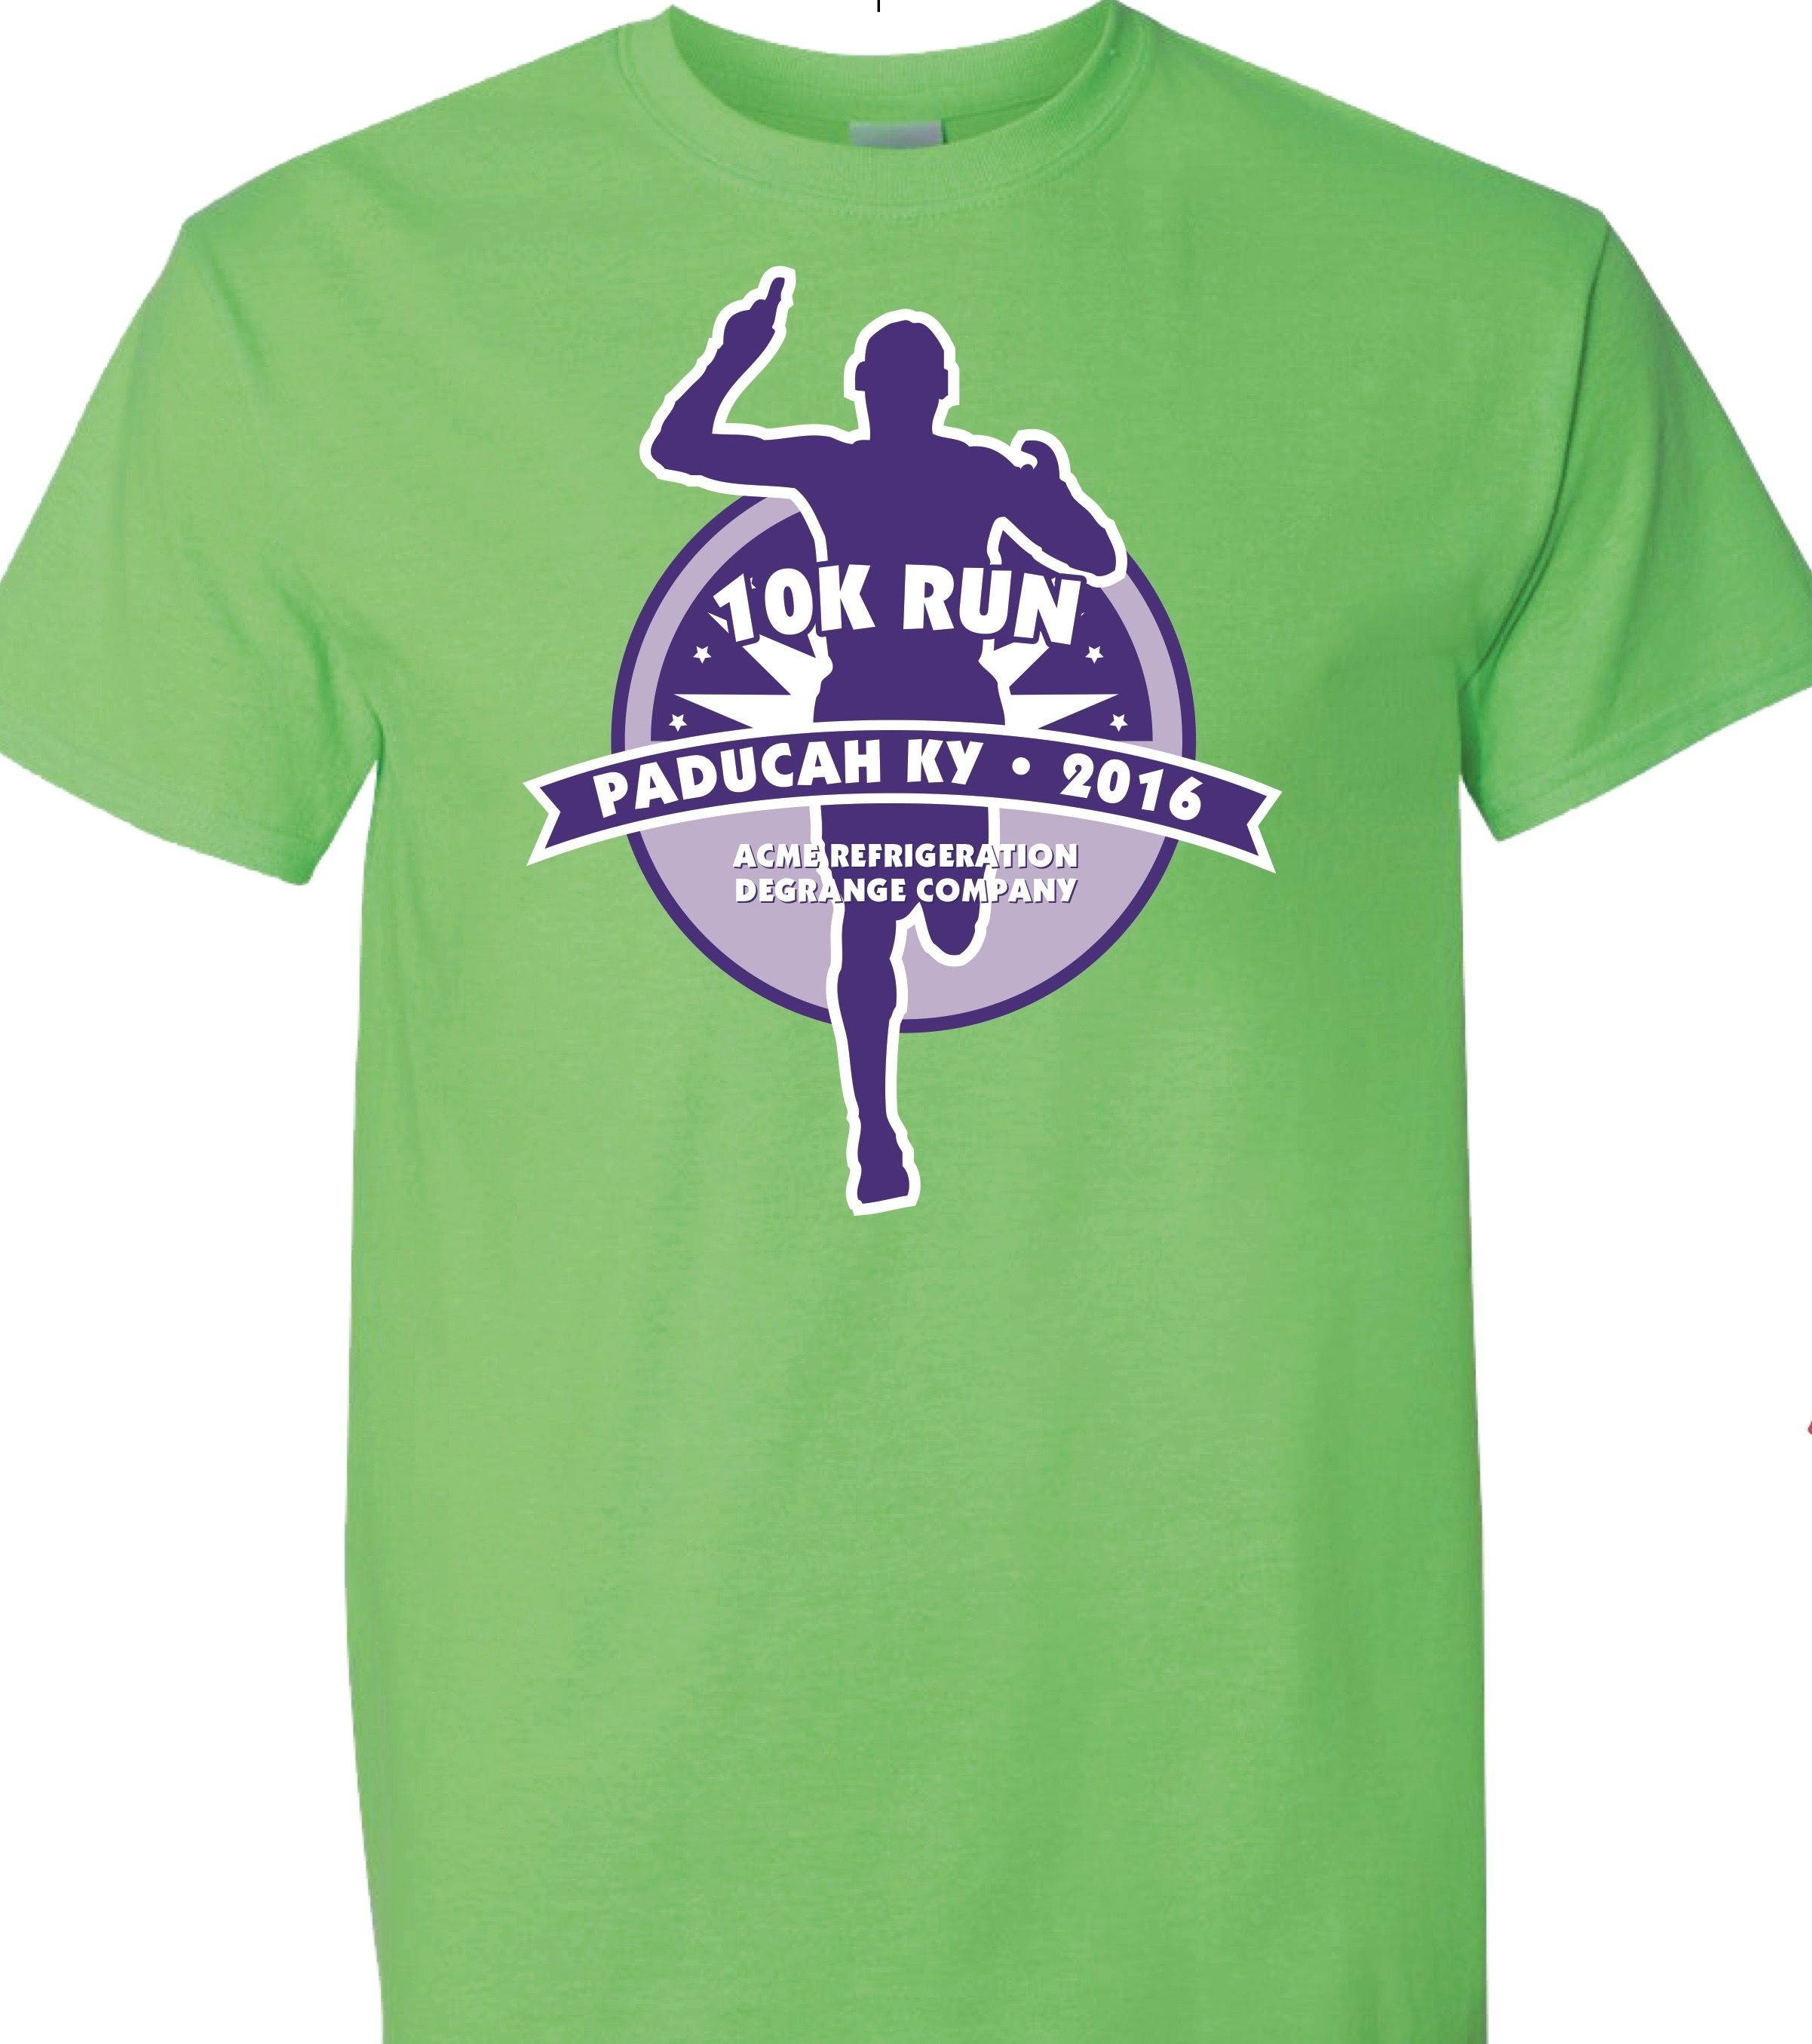 5k Tee Design For Paducahs 10k Run Like This Design Let Us Help